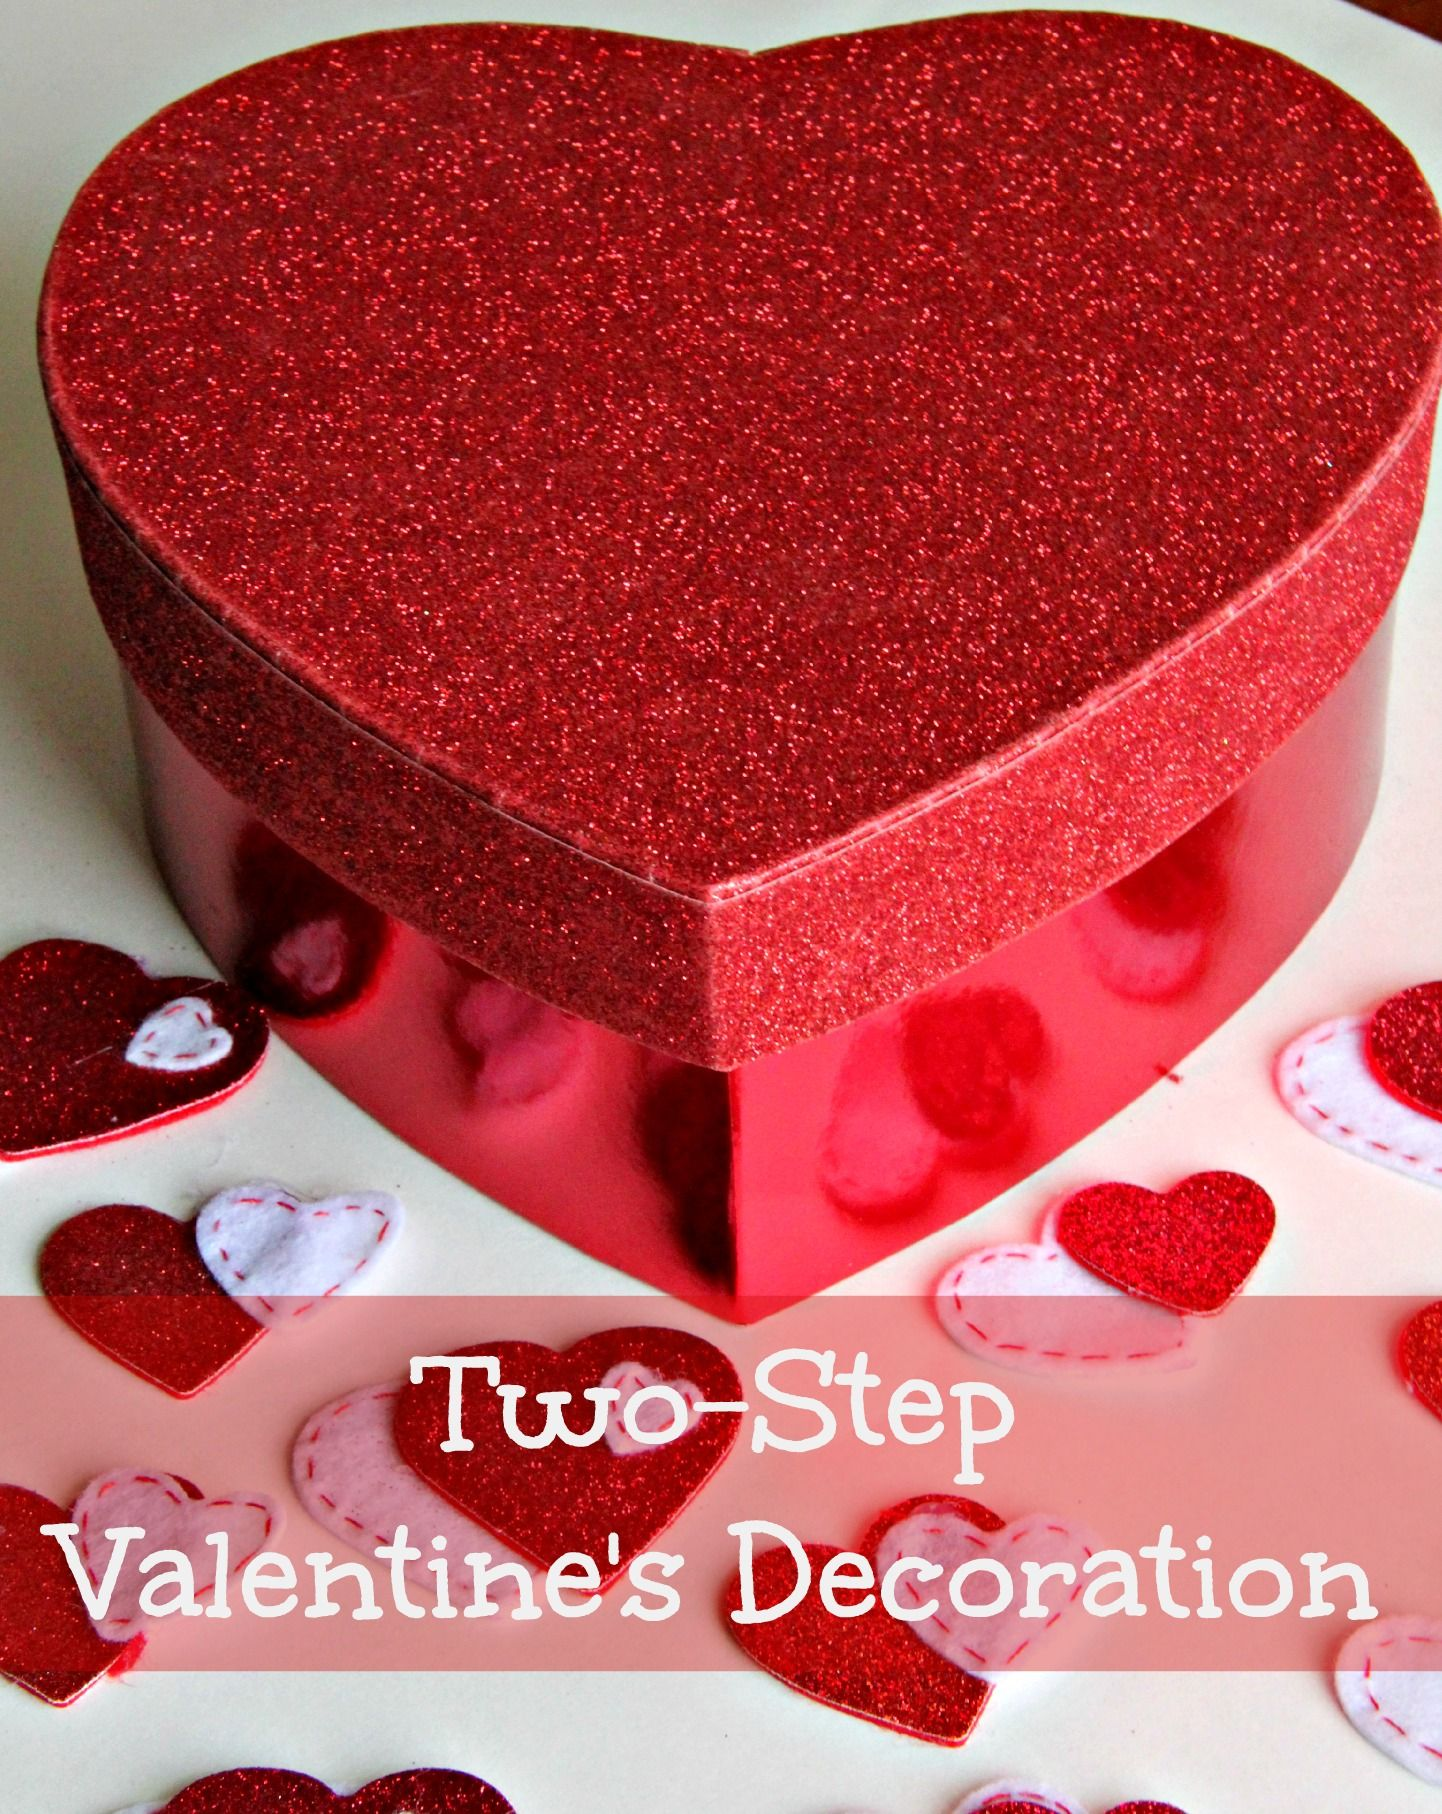 Ideas For Decorating Valentine Boxes Twostep Valentine's Decoration  Decoration Holidays And Diy Party